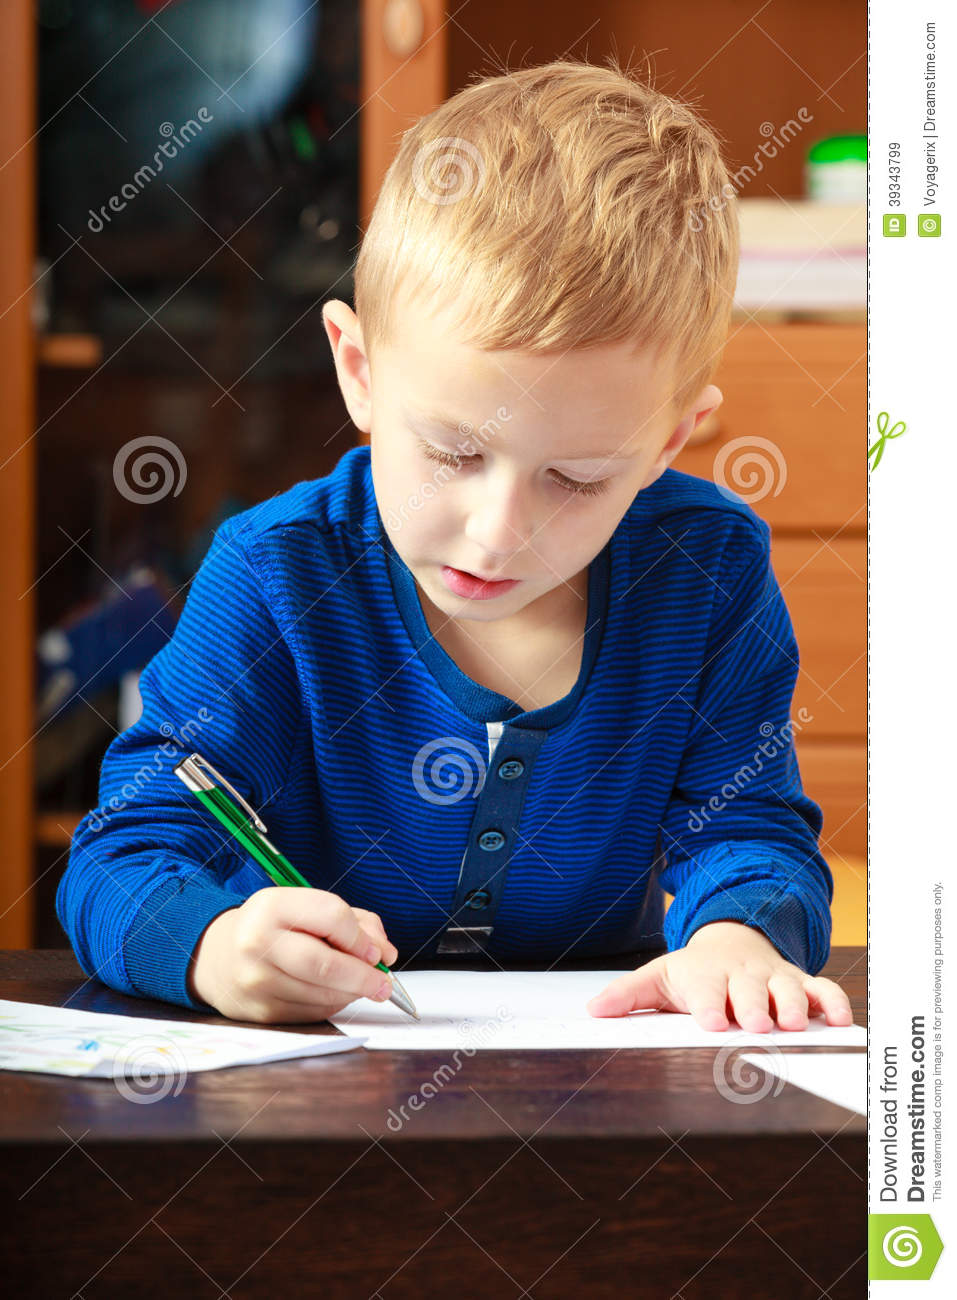 10 Tips to Help Build Your Child's Writing Skills